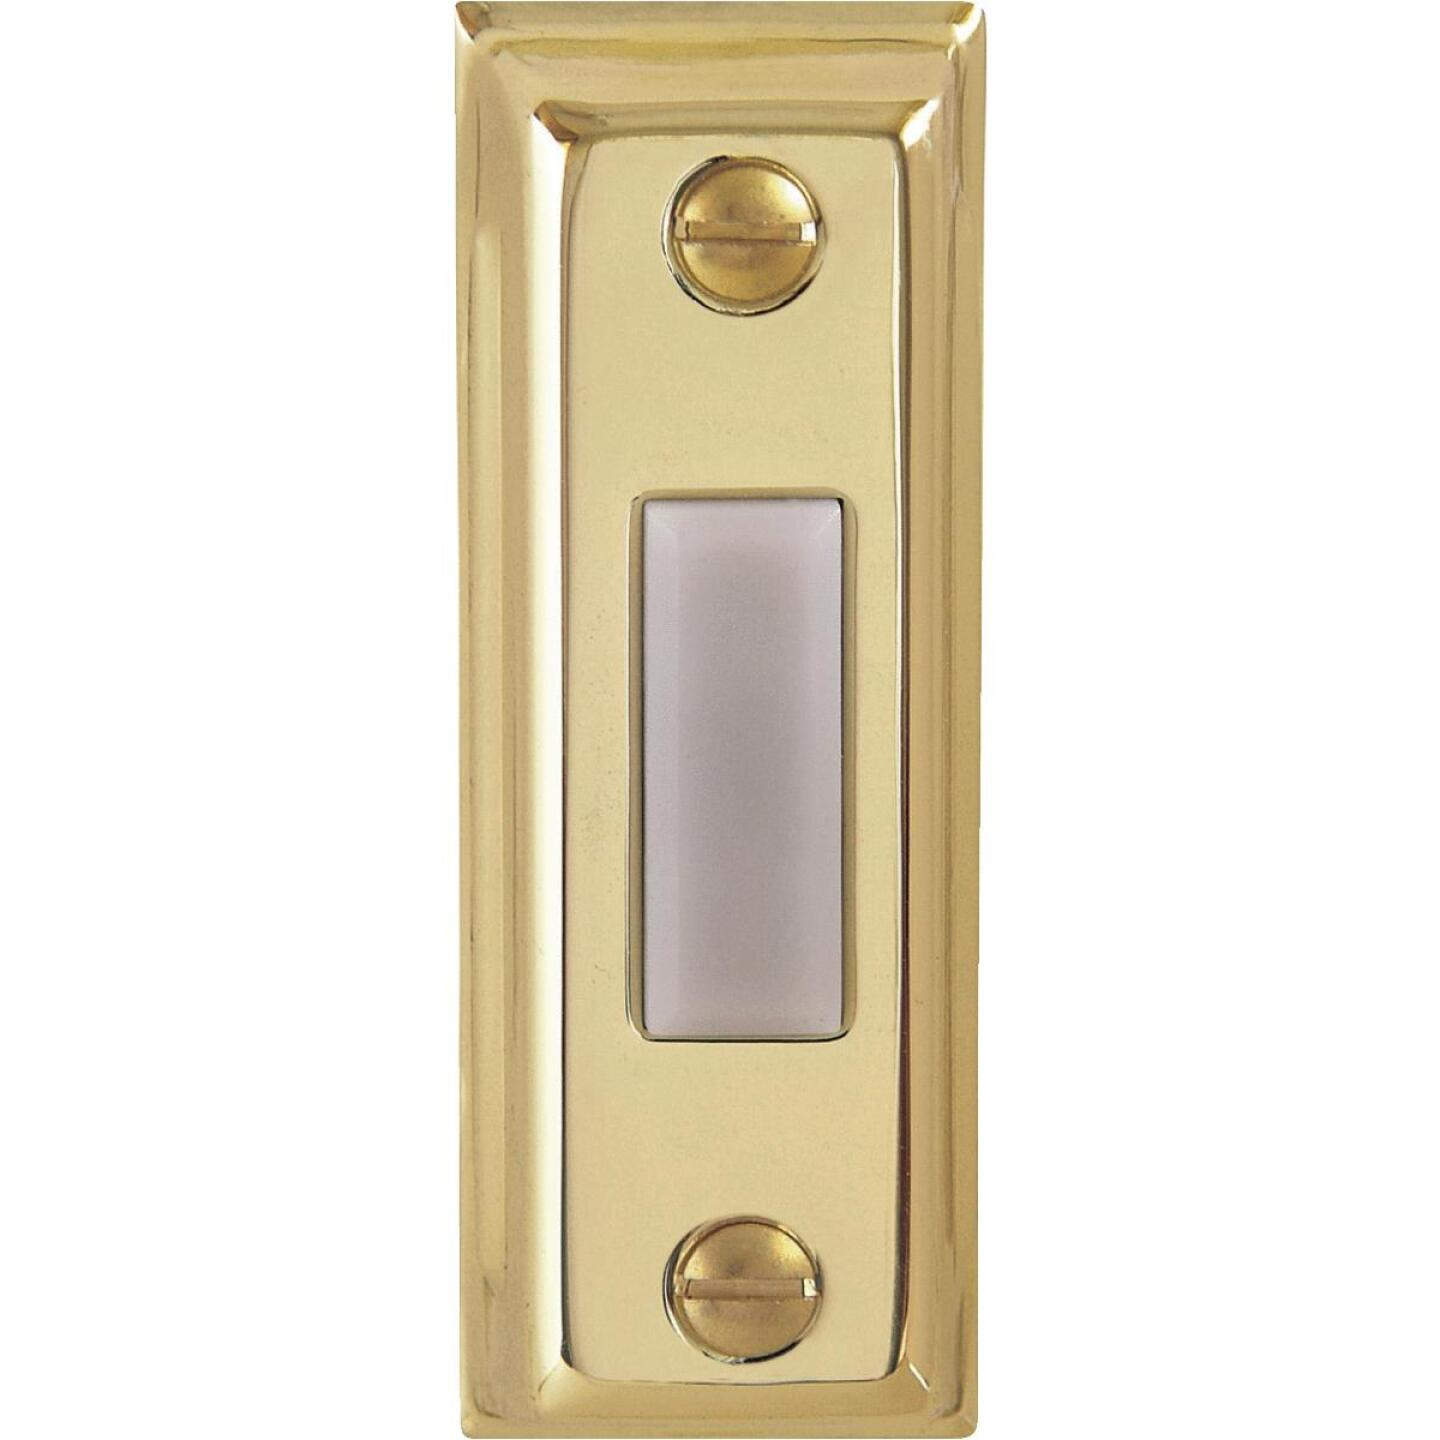 IQ America Wired Polished Brass Rectangular Design Lighted Doorbell Push-Button Image 1